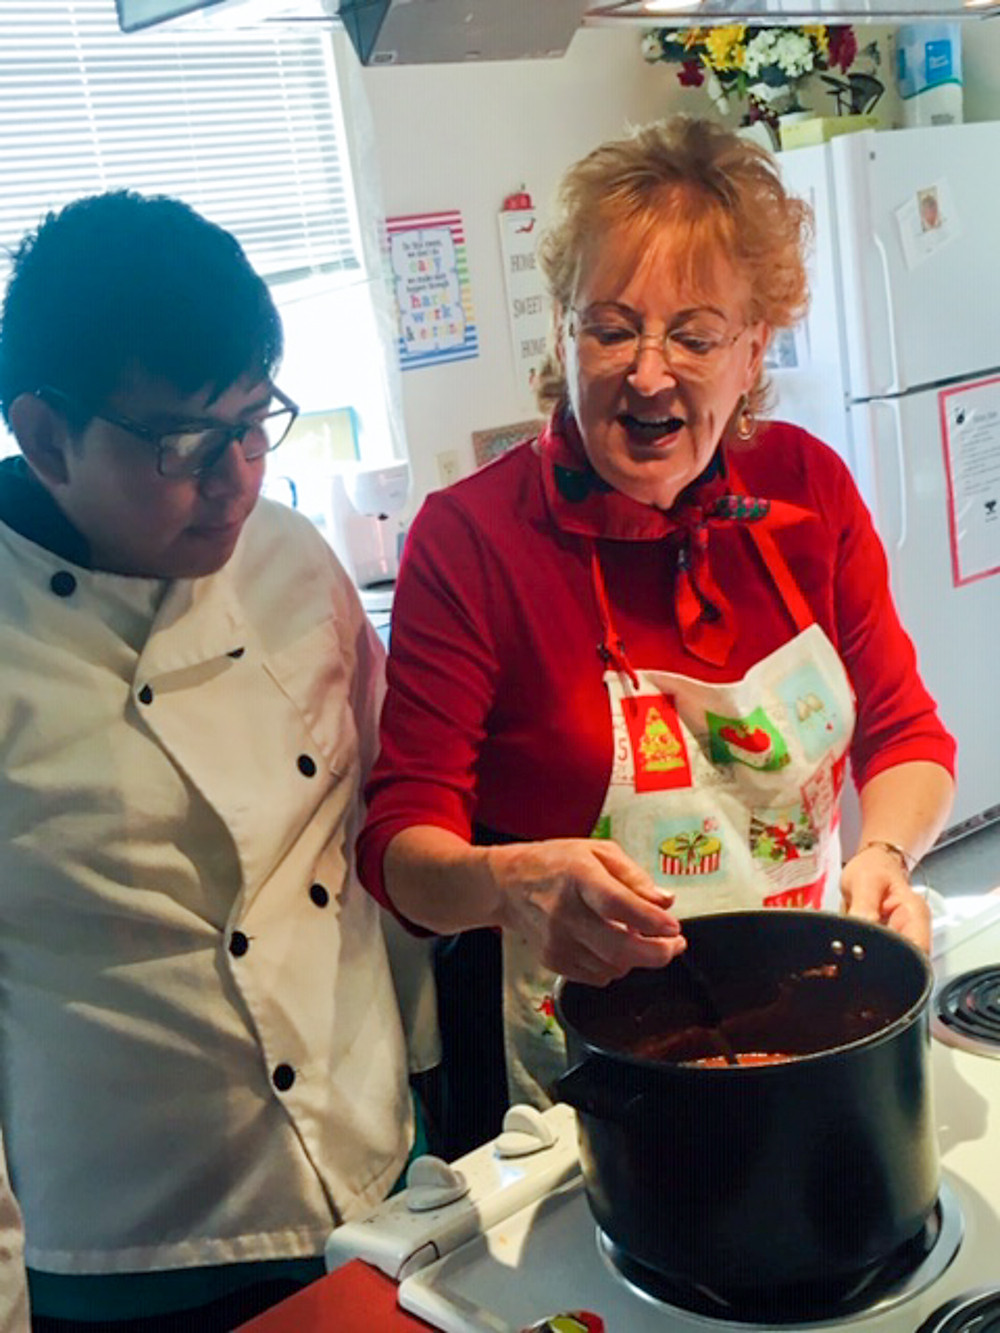 Ms. Parsons teaching a blind student how to cook spaghetti sauce.